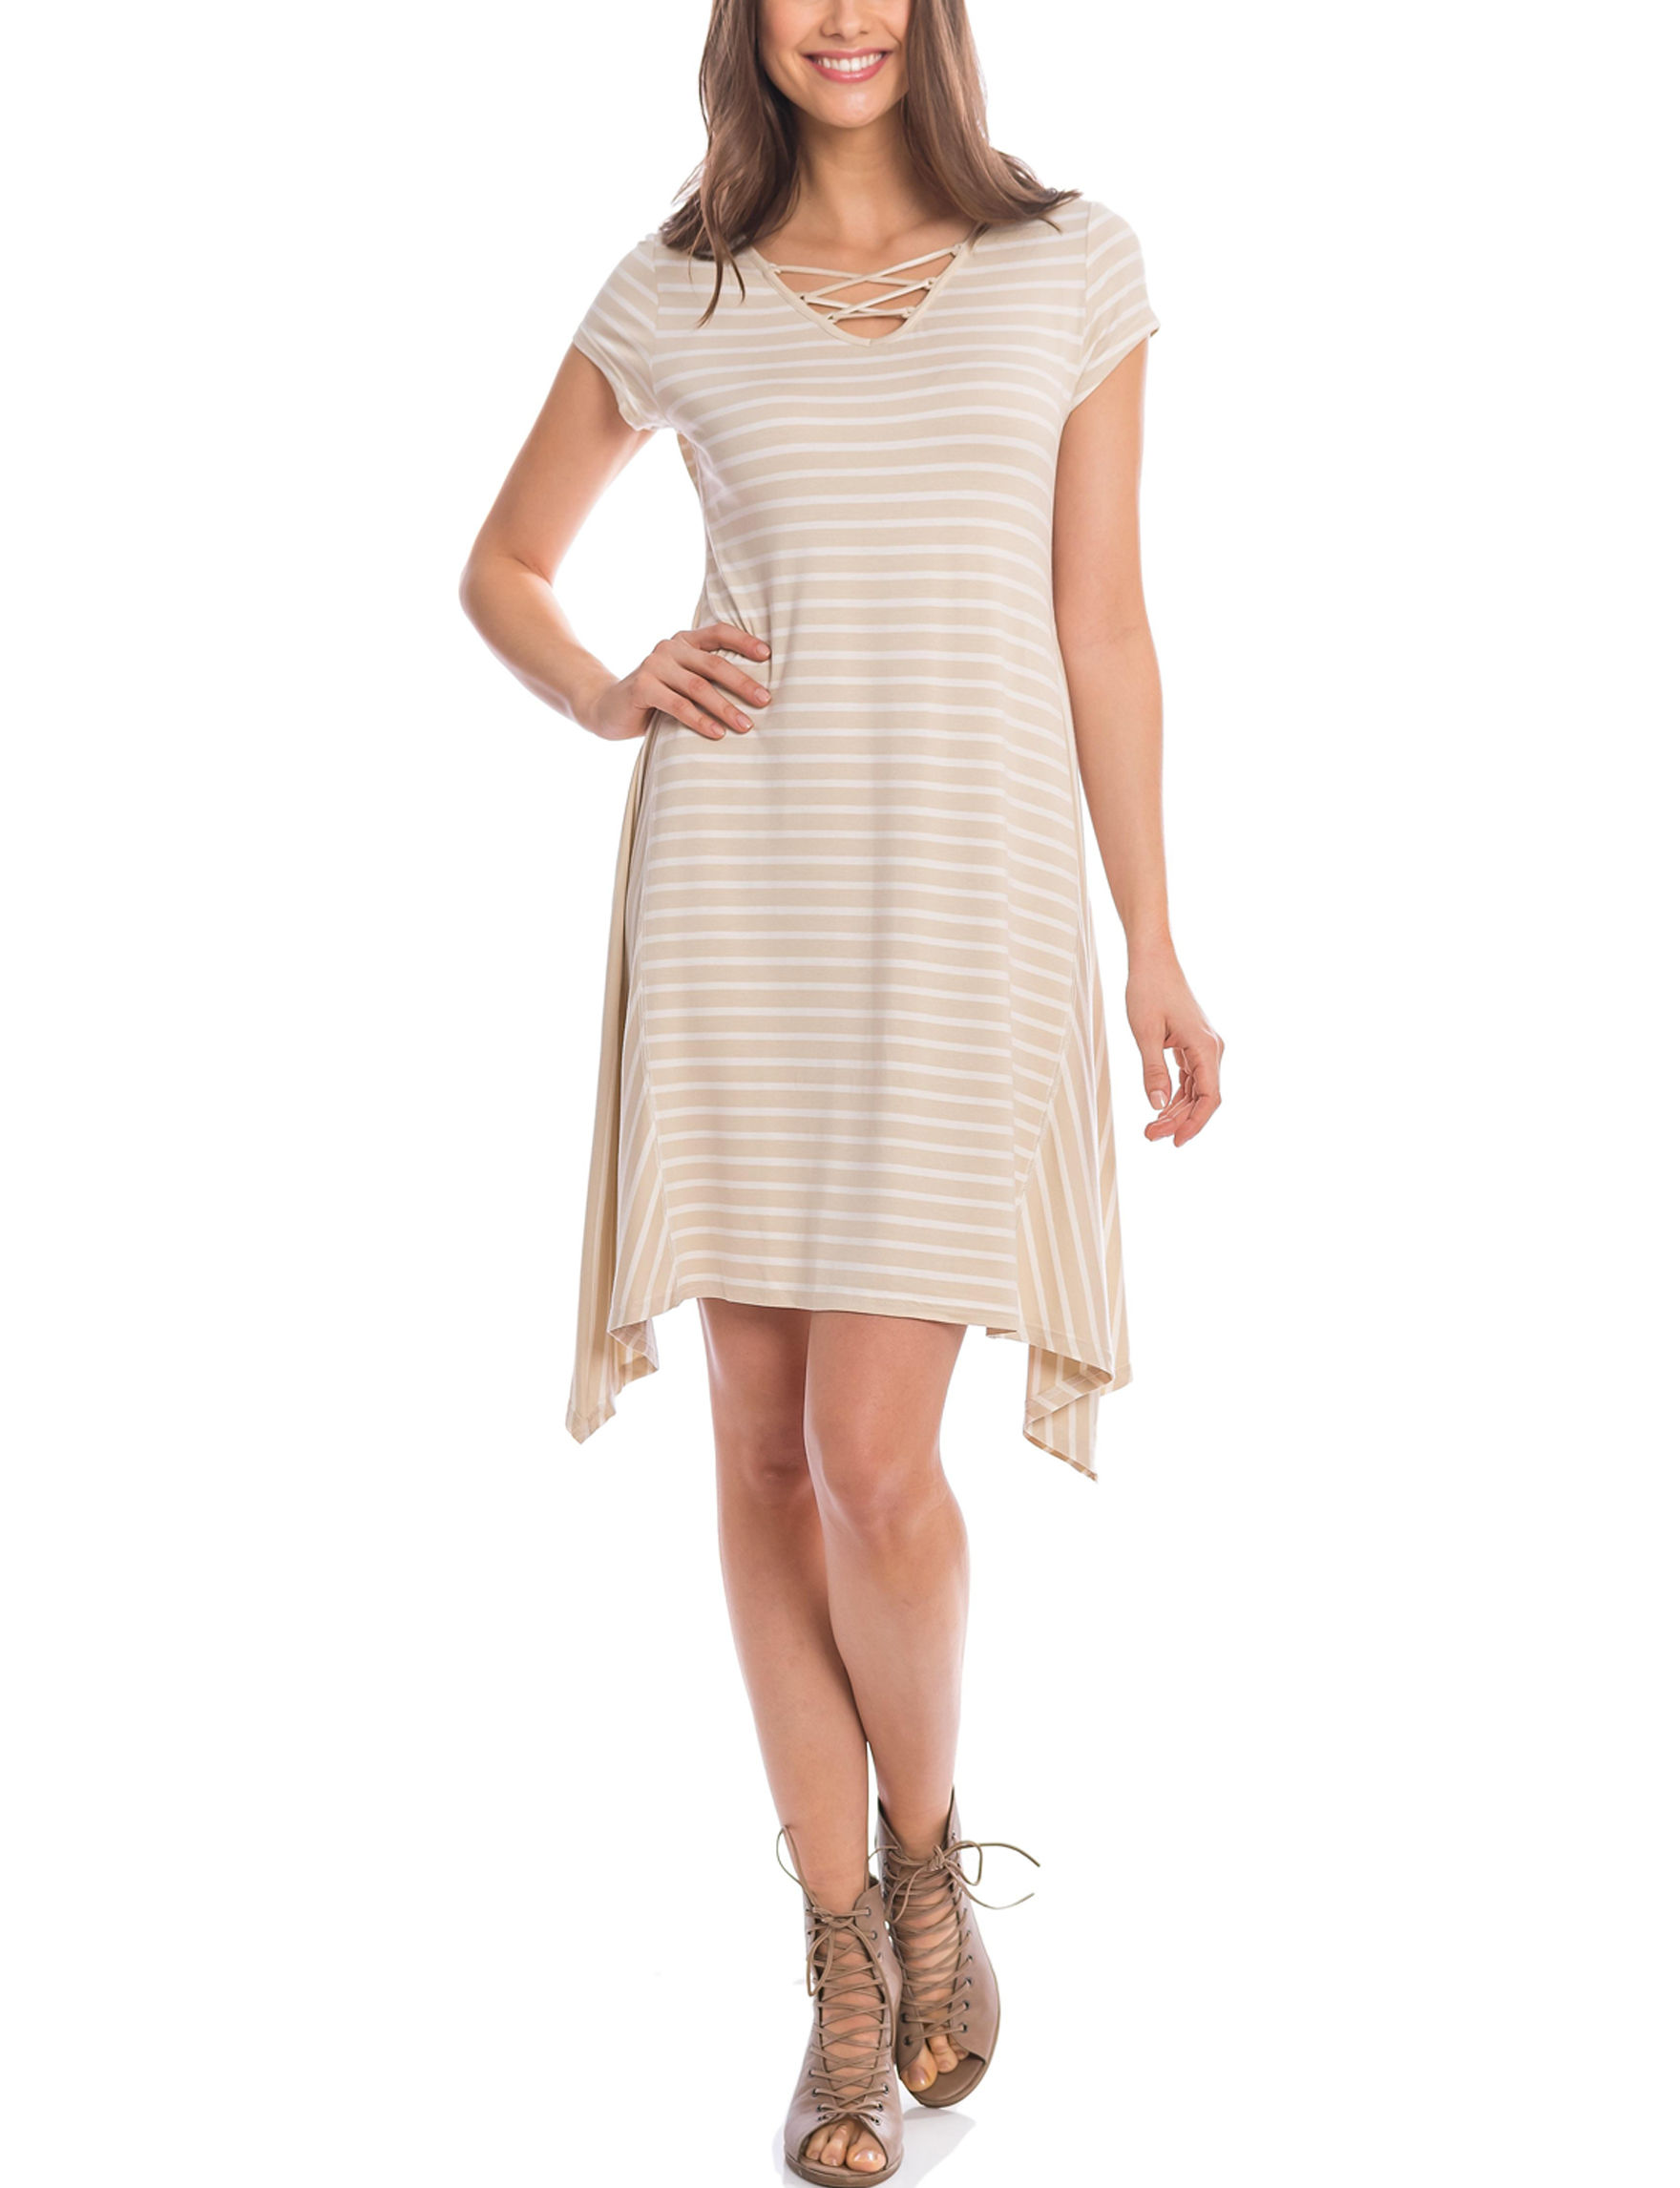 Skyes The Limit Tan Everyday & Casual Shift Dresses